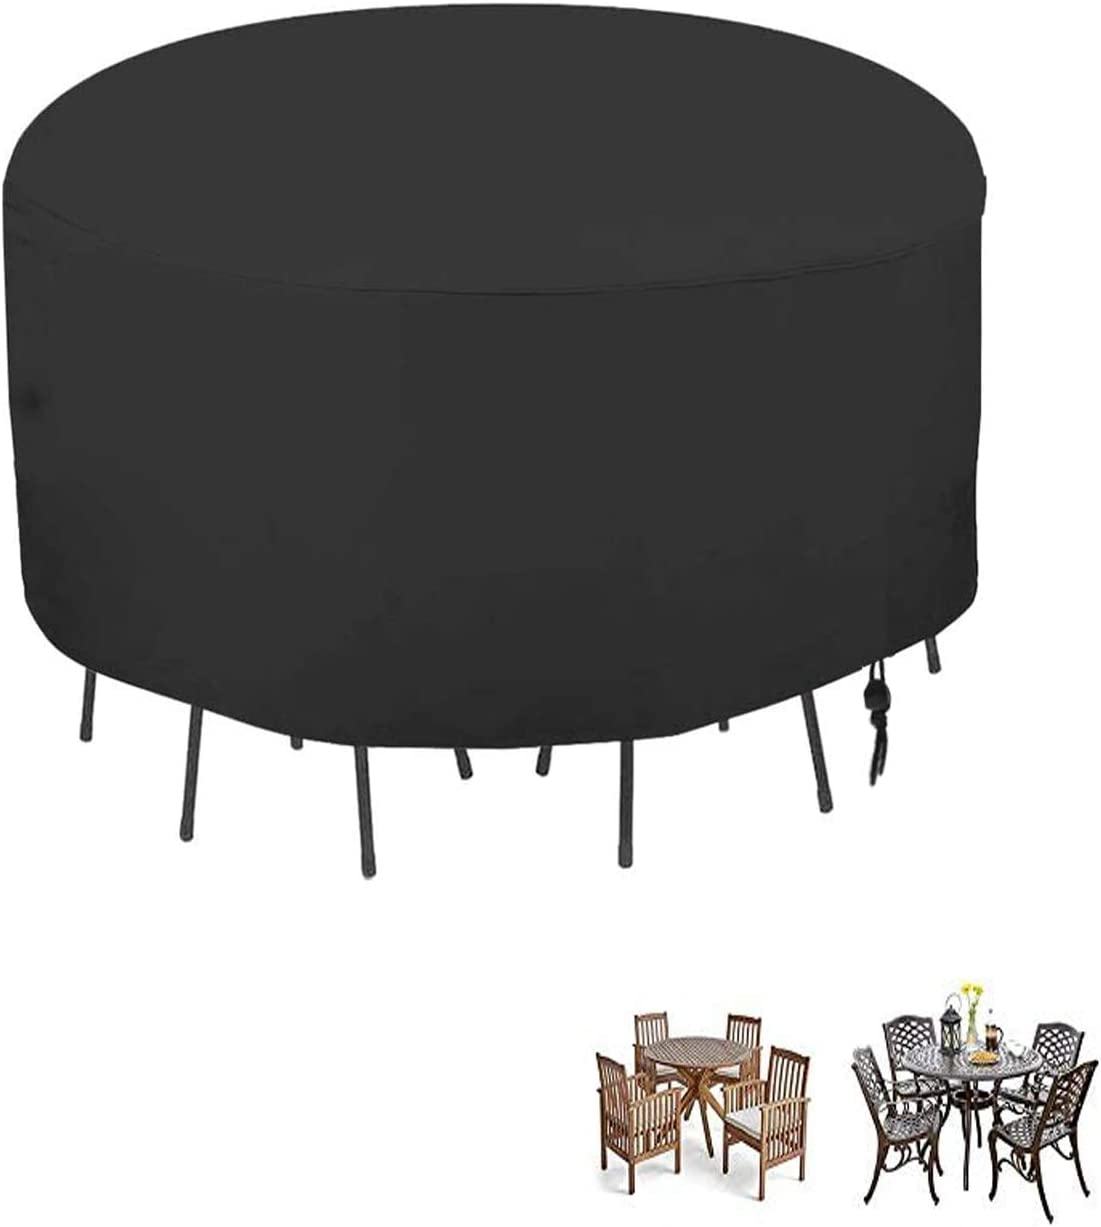 POMER Patio Table & Chair Set Cover – 90 x 43 Inch Premium Outdoor Sofa Furniture Cover with Durable and Water Resistant Fabric